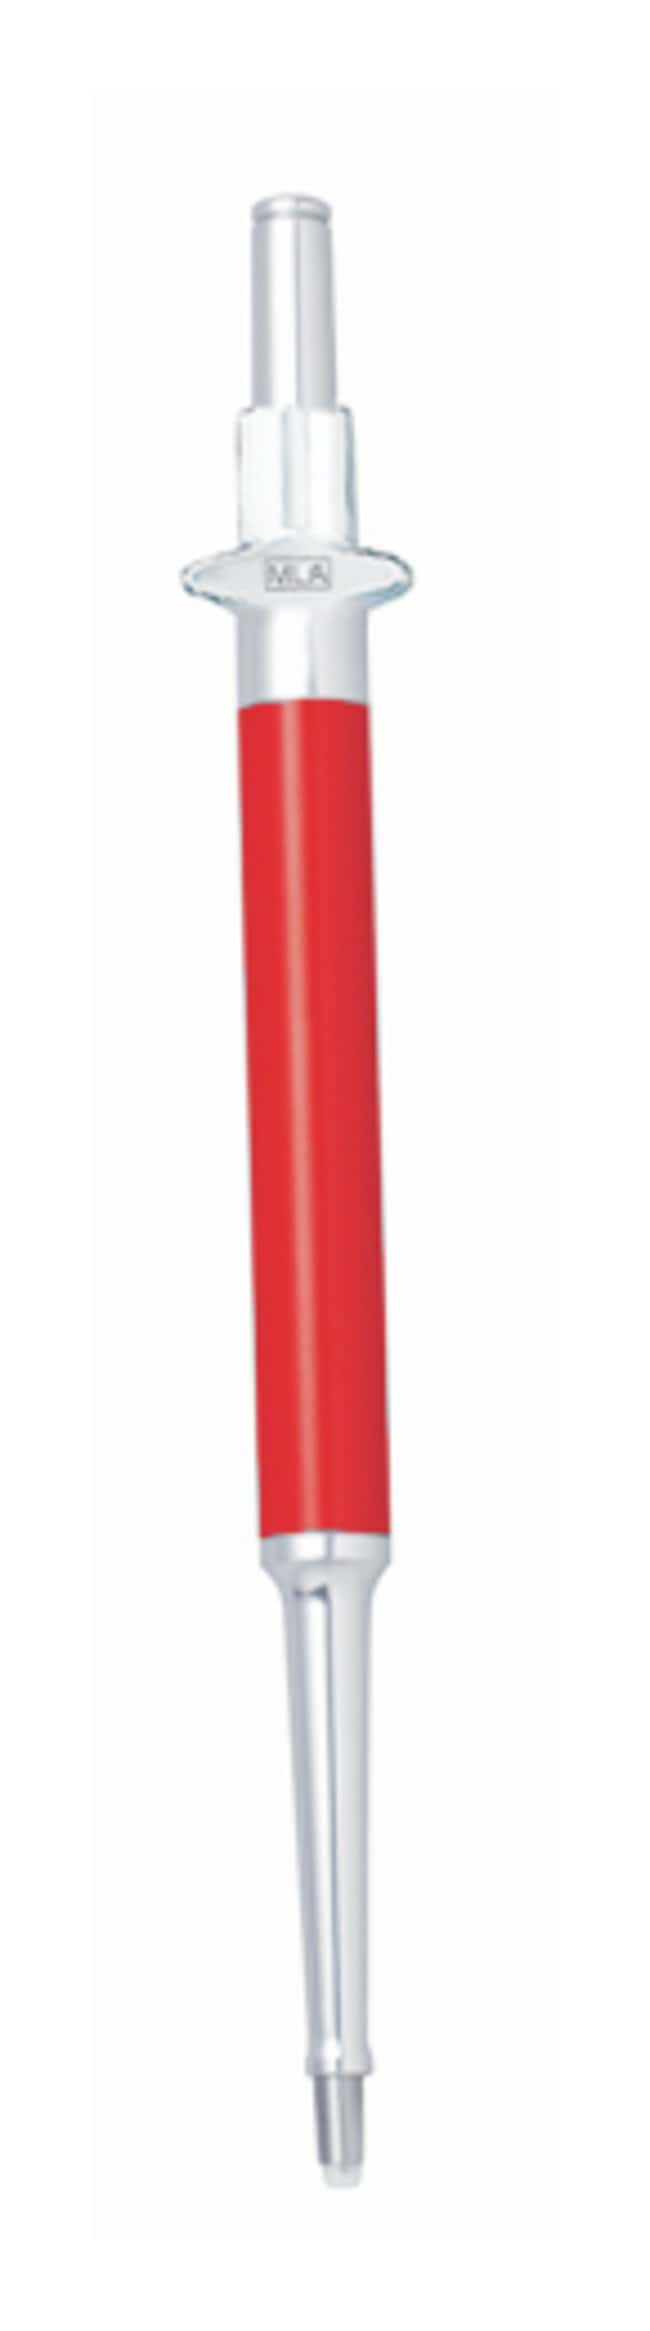 VistaLab™ Technologies MLA™ Brand Precision Pipetters Volume: 200μL; Color Code: Red VistaLab™ Technologies MLA™ Brand Precision Pipetters